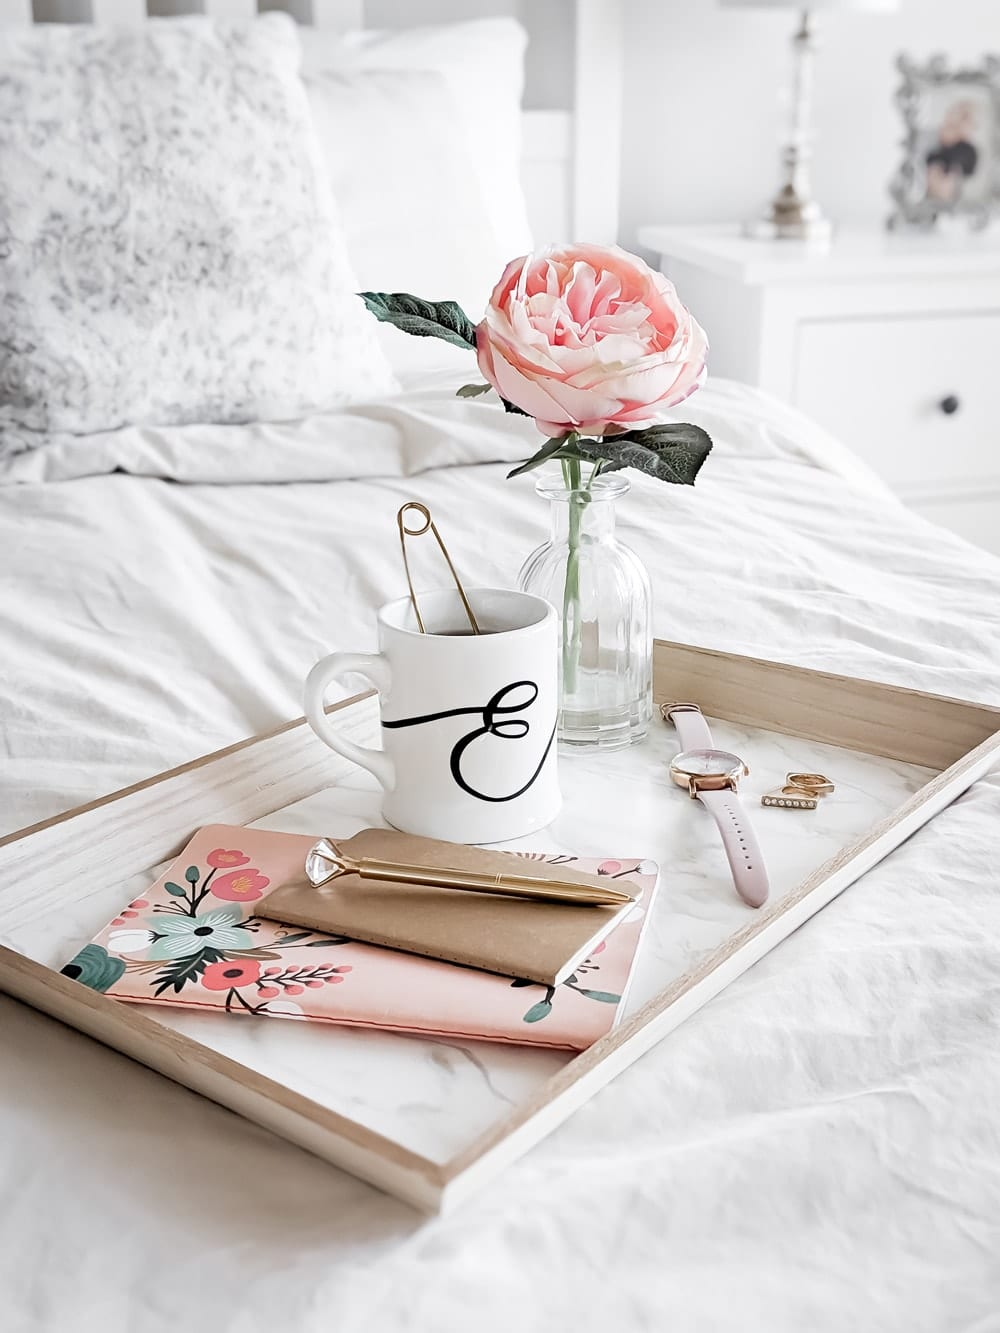 Do it yourself home decor - DIY marble and gold breakfast tray